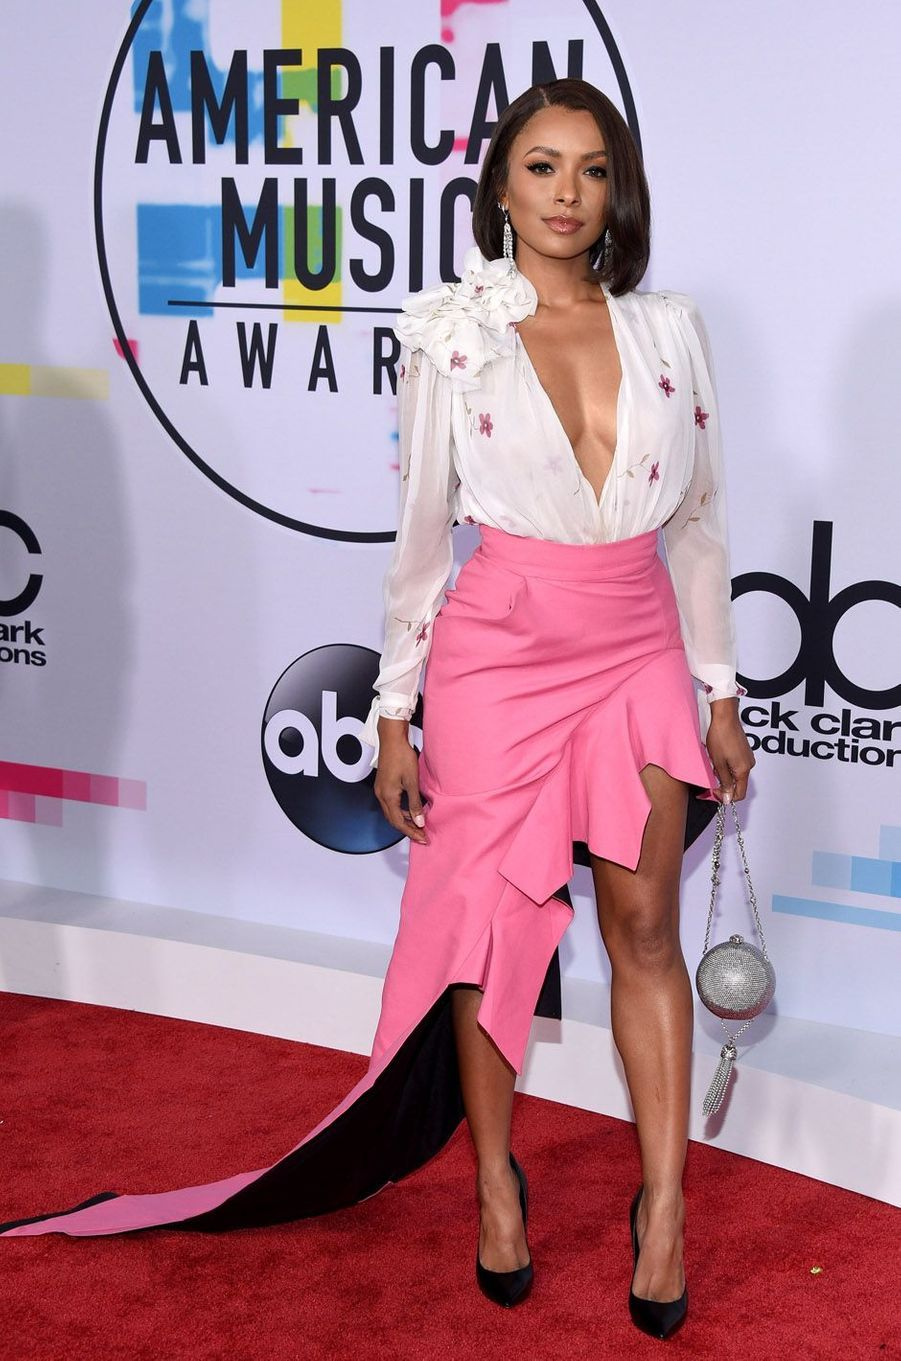 Kat Graham aux American Music Awards, le 19 novembre 2017 à Los Angeles.